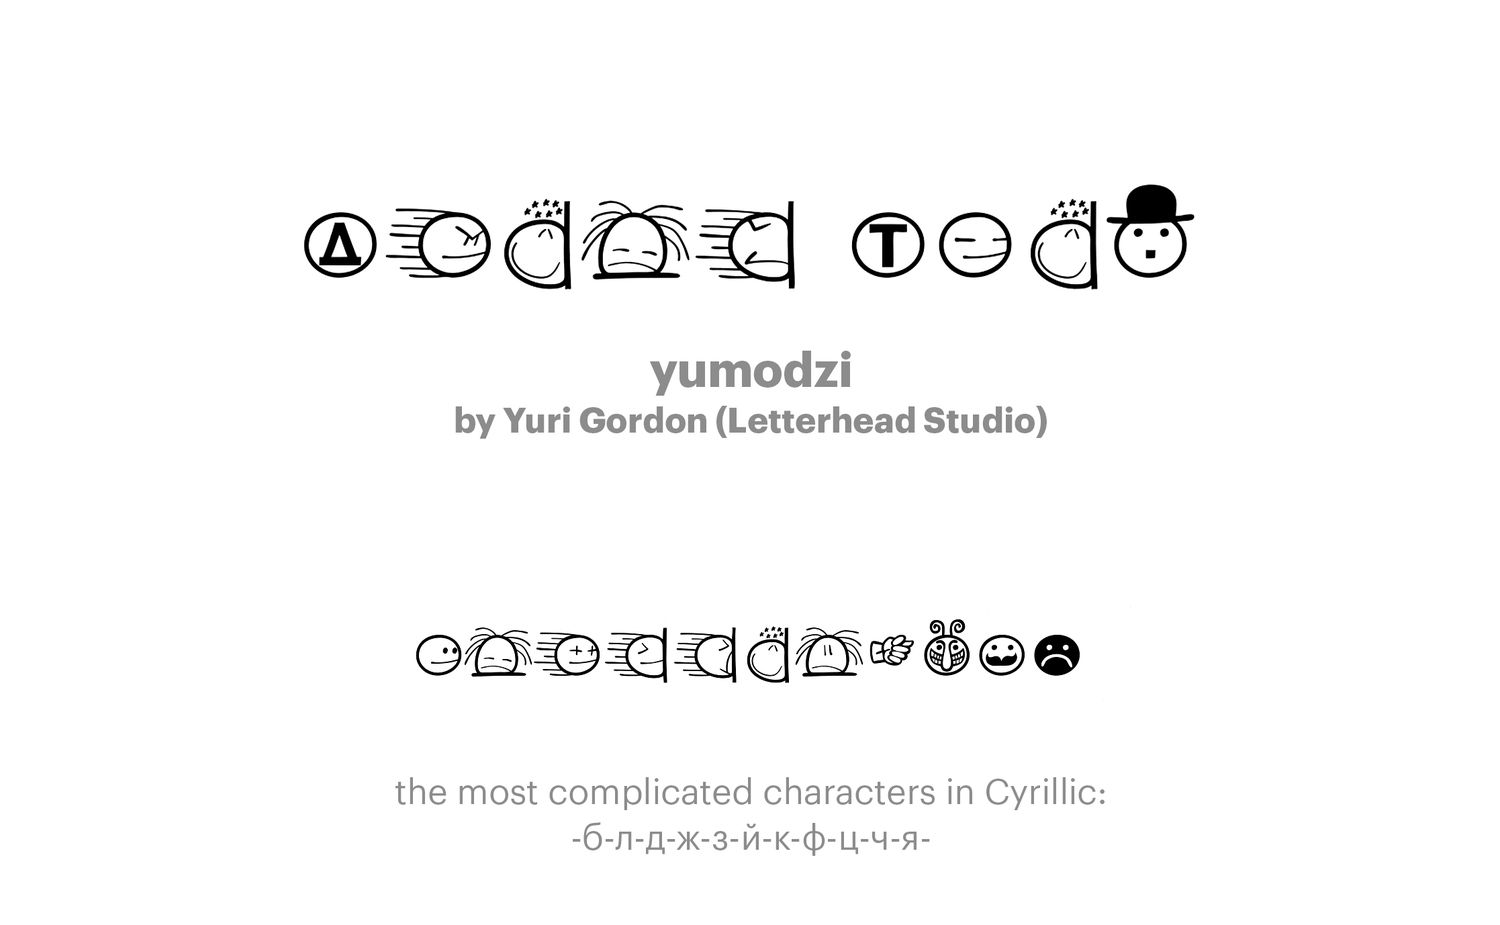 yumodzi-by-Yuri-Gordon-(Letterhead-Studio)